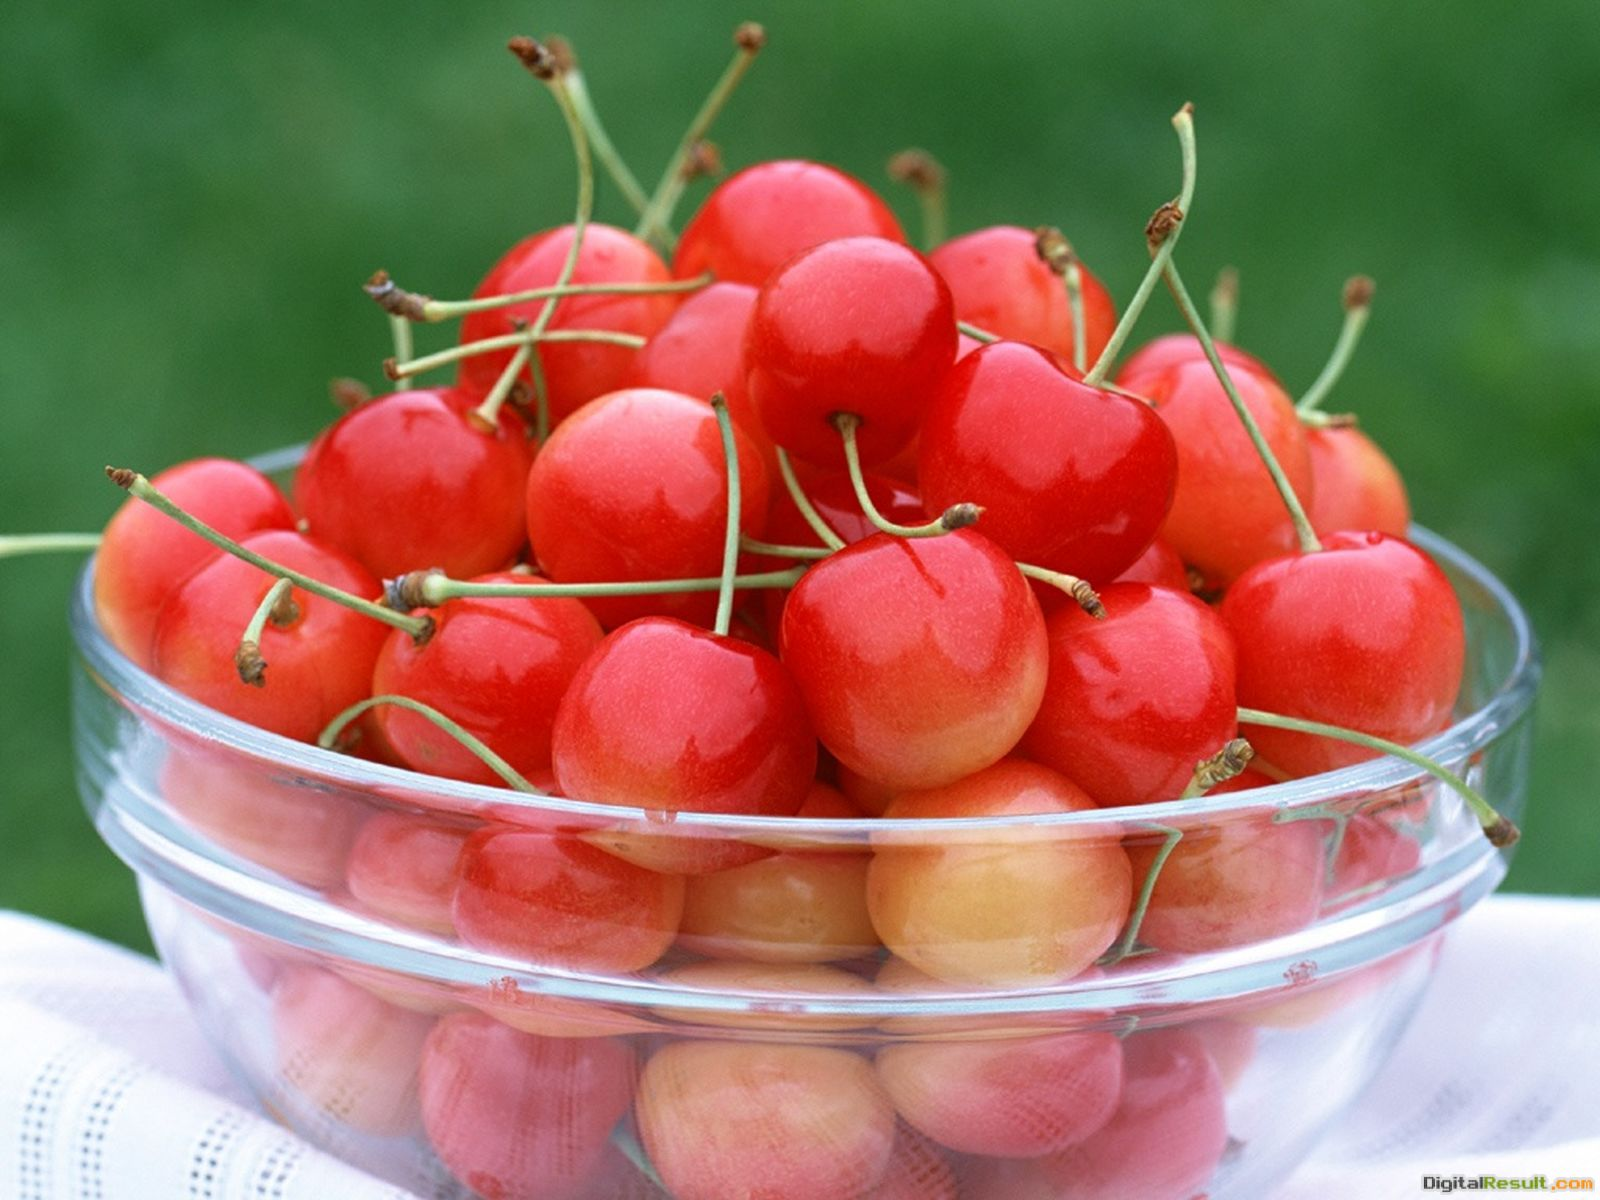 Cherry Fruit Wallpaper HD wallpapersCherry Fruit Wallpaper 1732